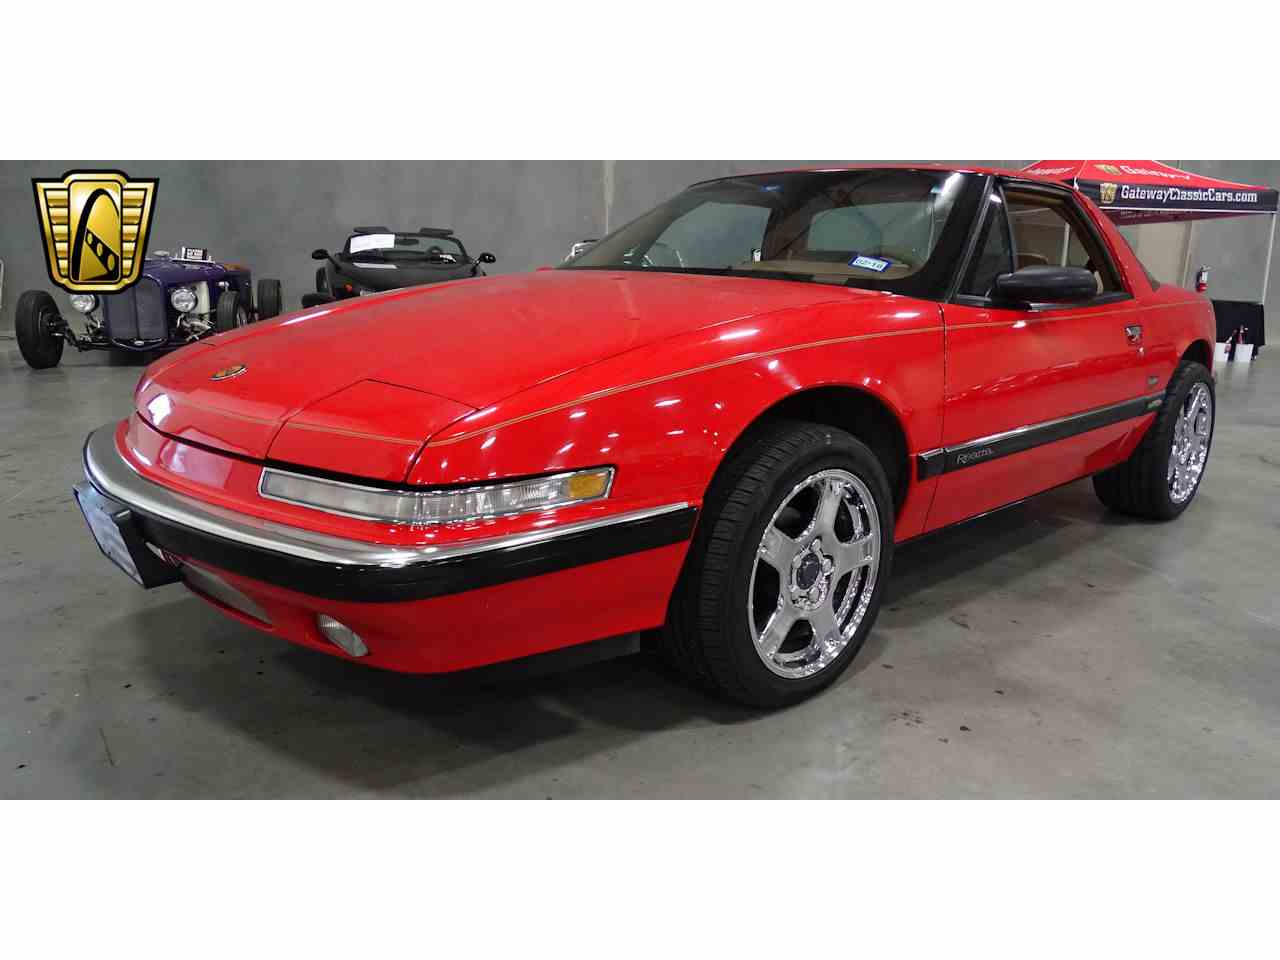 Large Picture of 1990 Buick Reatta located in Texas - $8,995.00 - KOB1